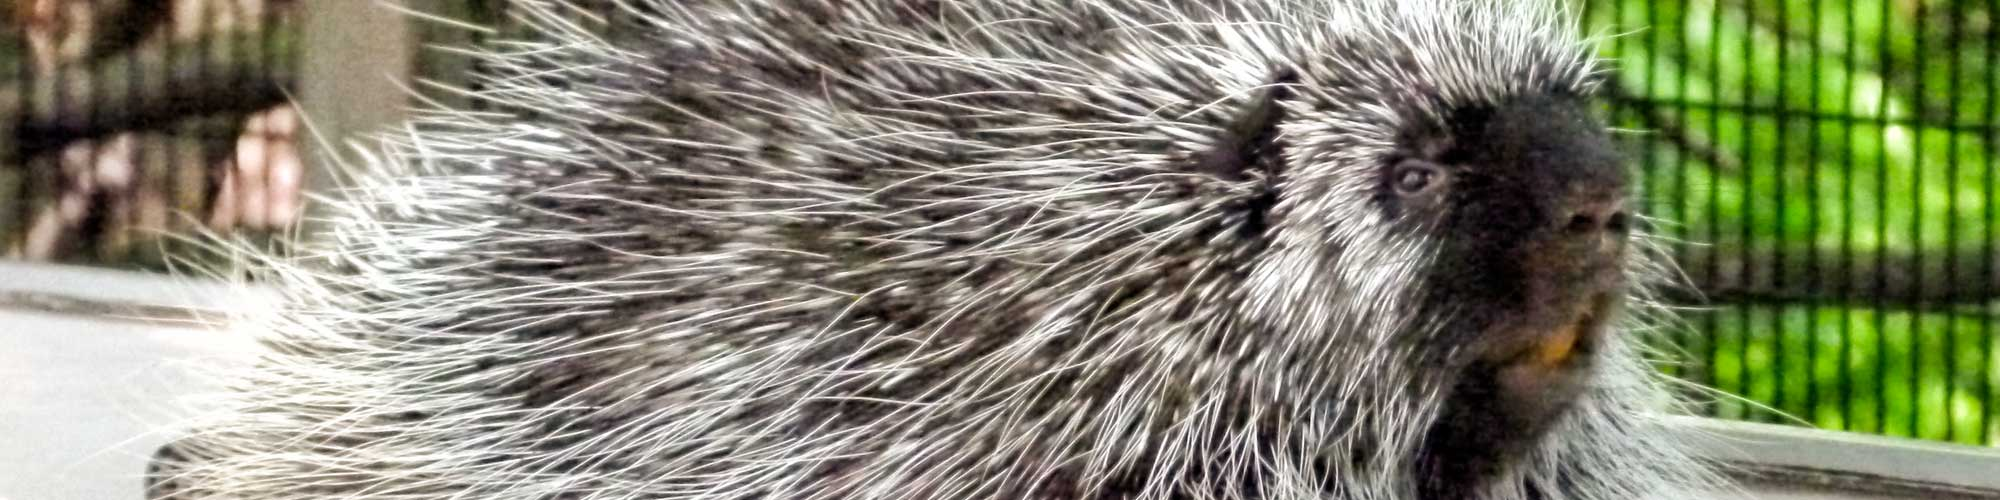 Porcupine face and body